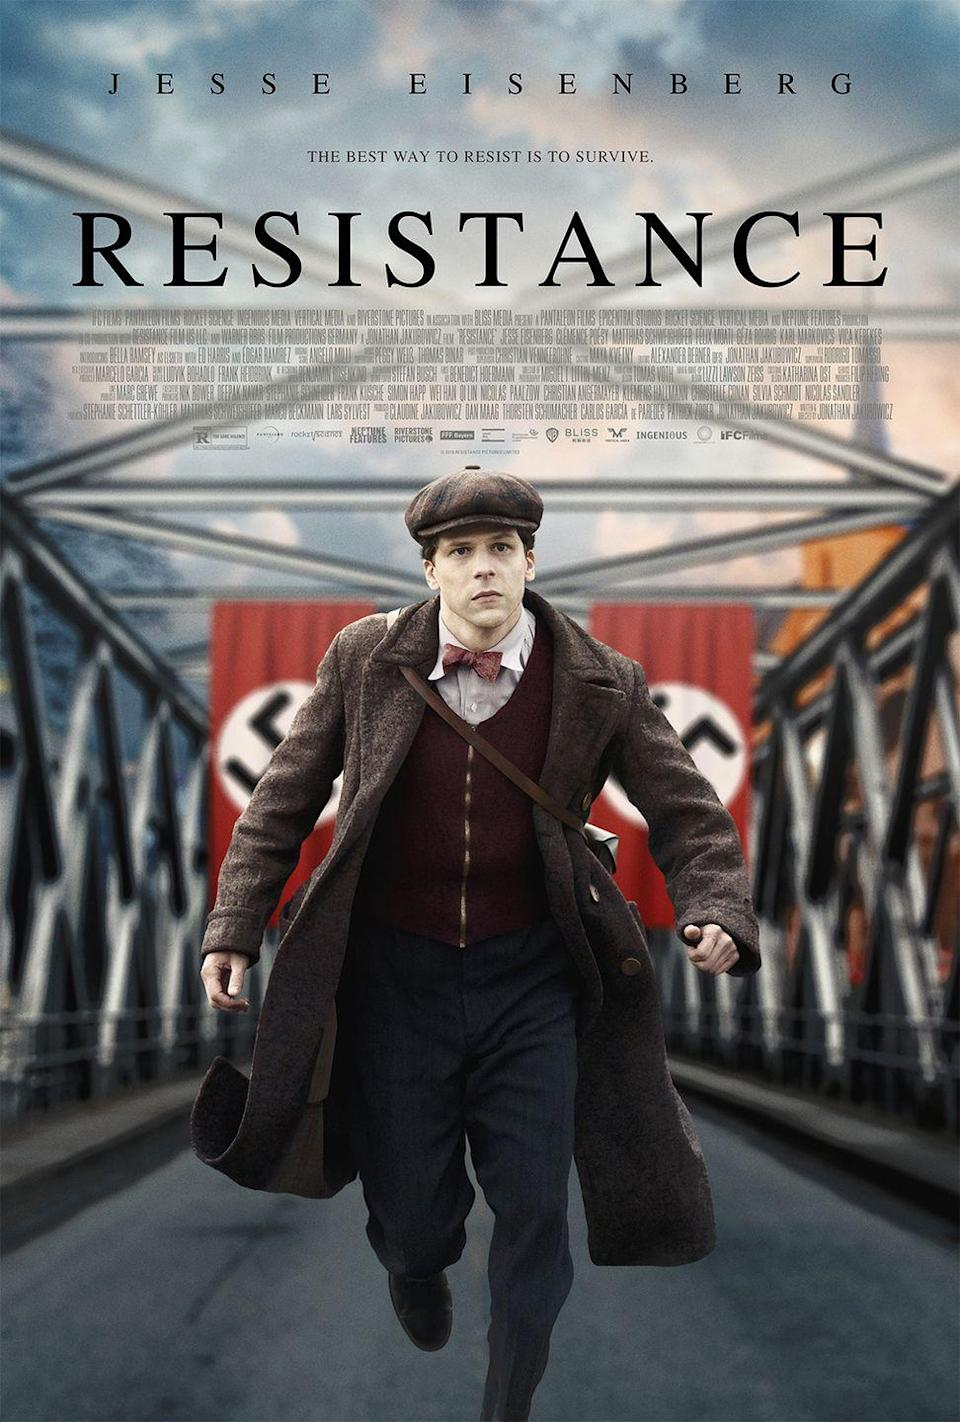 """<p>In this movie based on a true story, a mime named Marcel Marceau, played by Jesse Eisenberg, becomes an unlikely hero when he aids the French Resistance in helping to smuggle orphaned Jewish children threatened by the Nazis across the border to Switzerland. While Marceau's legacy has always revolved heavily around his mime art, this film shines a light on his humanitarian work.</p><p><a class=""""link rapid-noclick-resp"""" href=""""https://www.amazon.com/Resistance-Jesse-Eisenberg/dp/B0868SYSTF?tag=syn-yahoo-20&ascsubtag=%5Bartid%7C10063.g.36572054%5Bsrc%7Cyahoo-us"""" rel=""""nofollow noopener"""" target=""""_blank"""" data-ylk=""""slk:Watch Here"""">Watch Here</a></p>"""